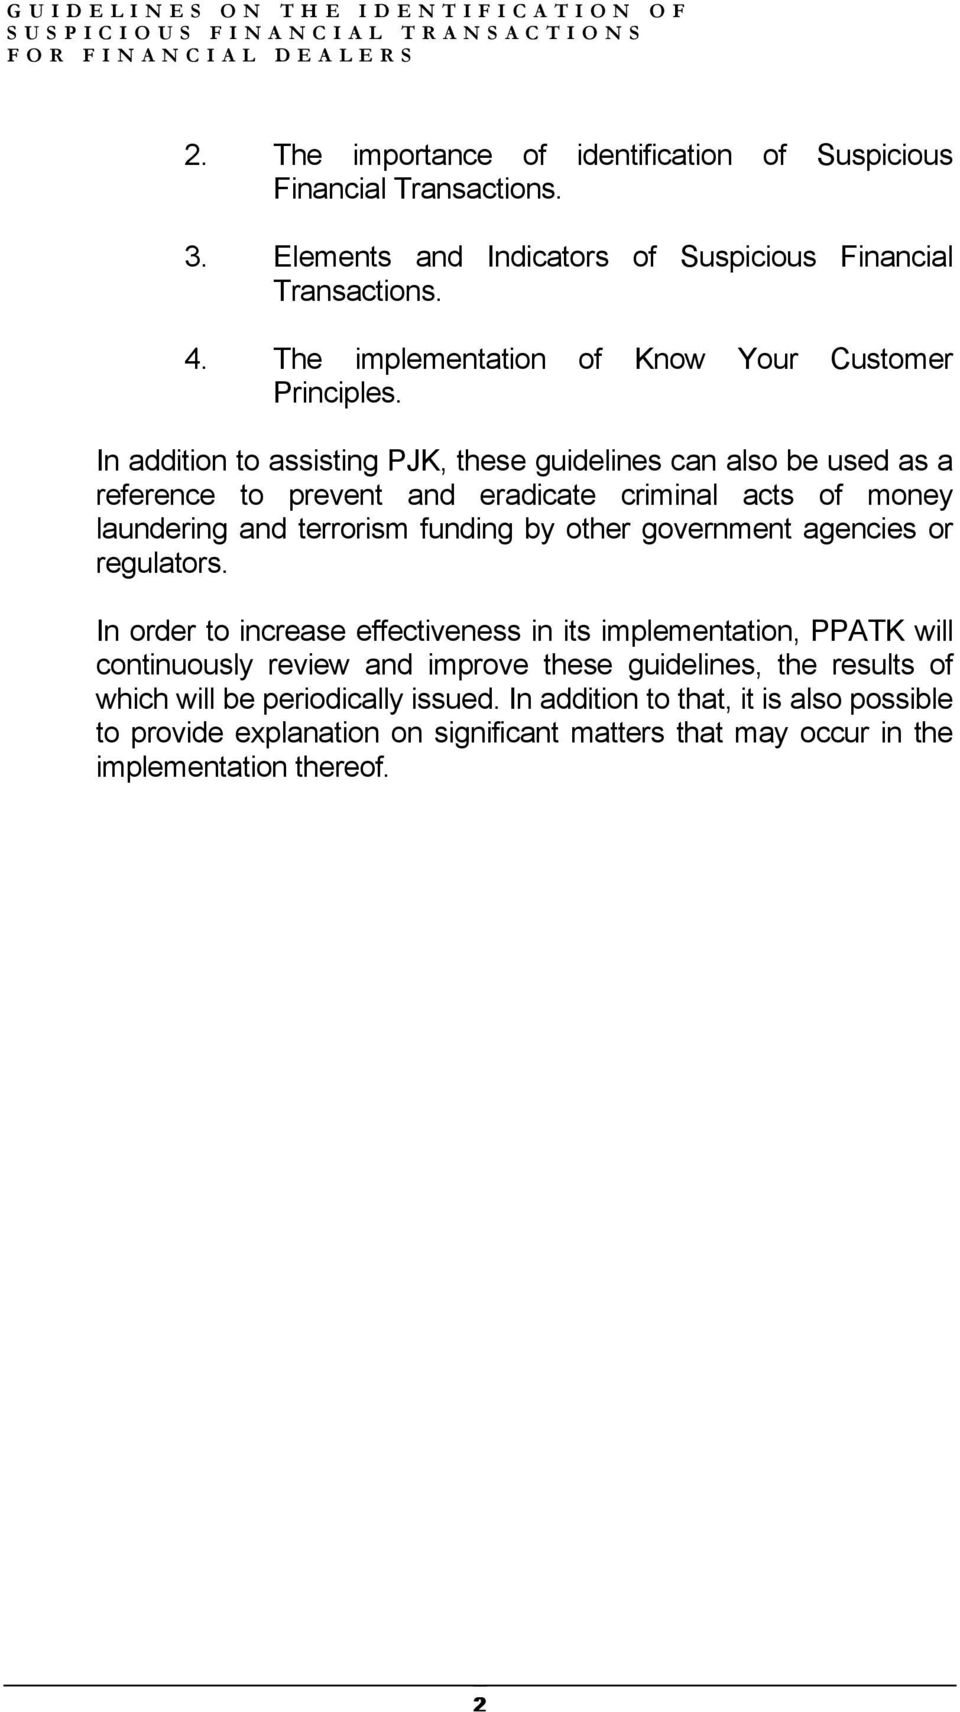 In addition to assisting PJK, these guidelines can also be used as a reference to prevent and eradicate criminal acts of money laundering and terrorism funding by other